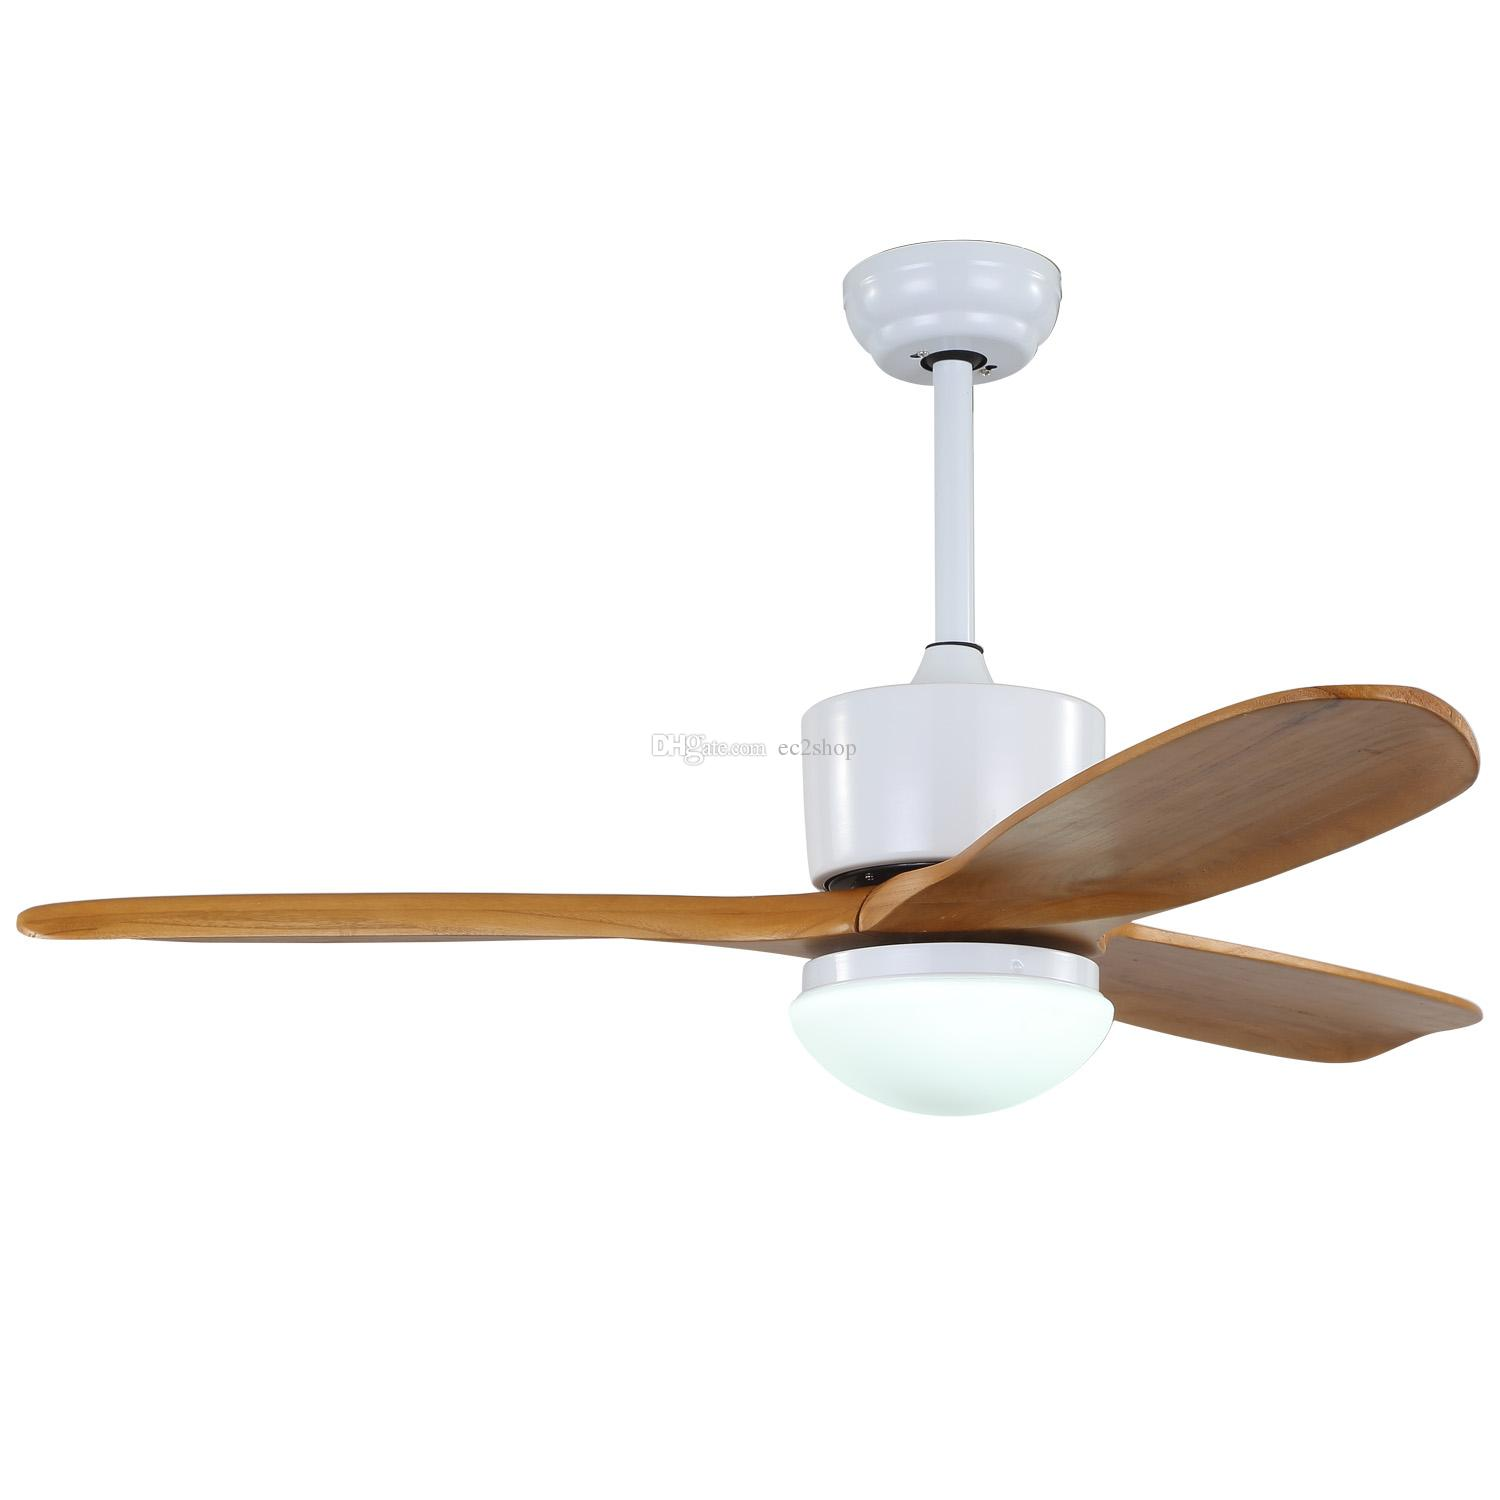 48 inch ceiling fan with light white china 48 inch best ceiling fan with light and remote control ac dc for bedroom living room on sale white